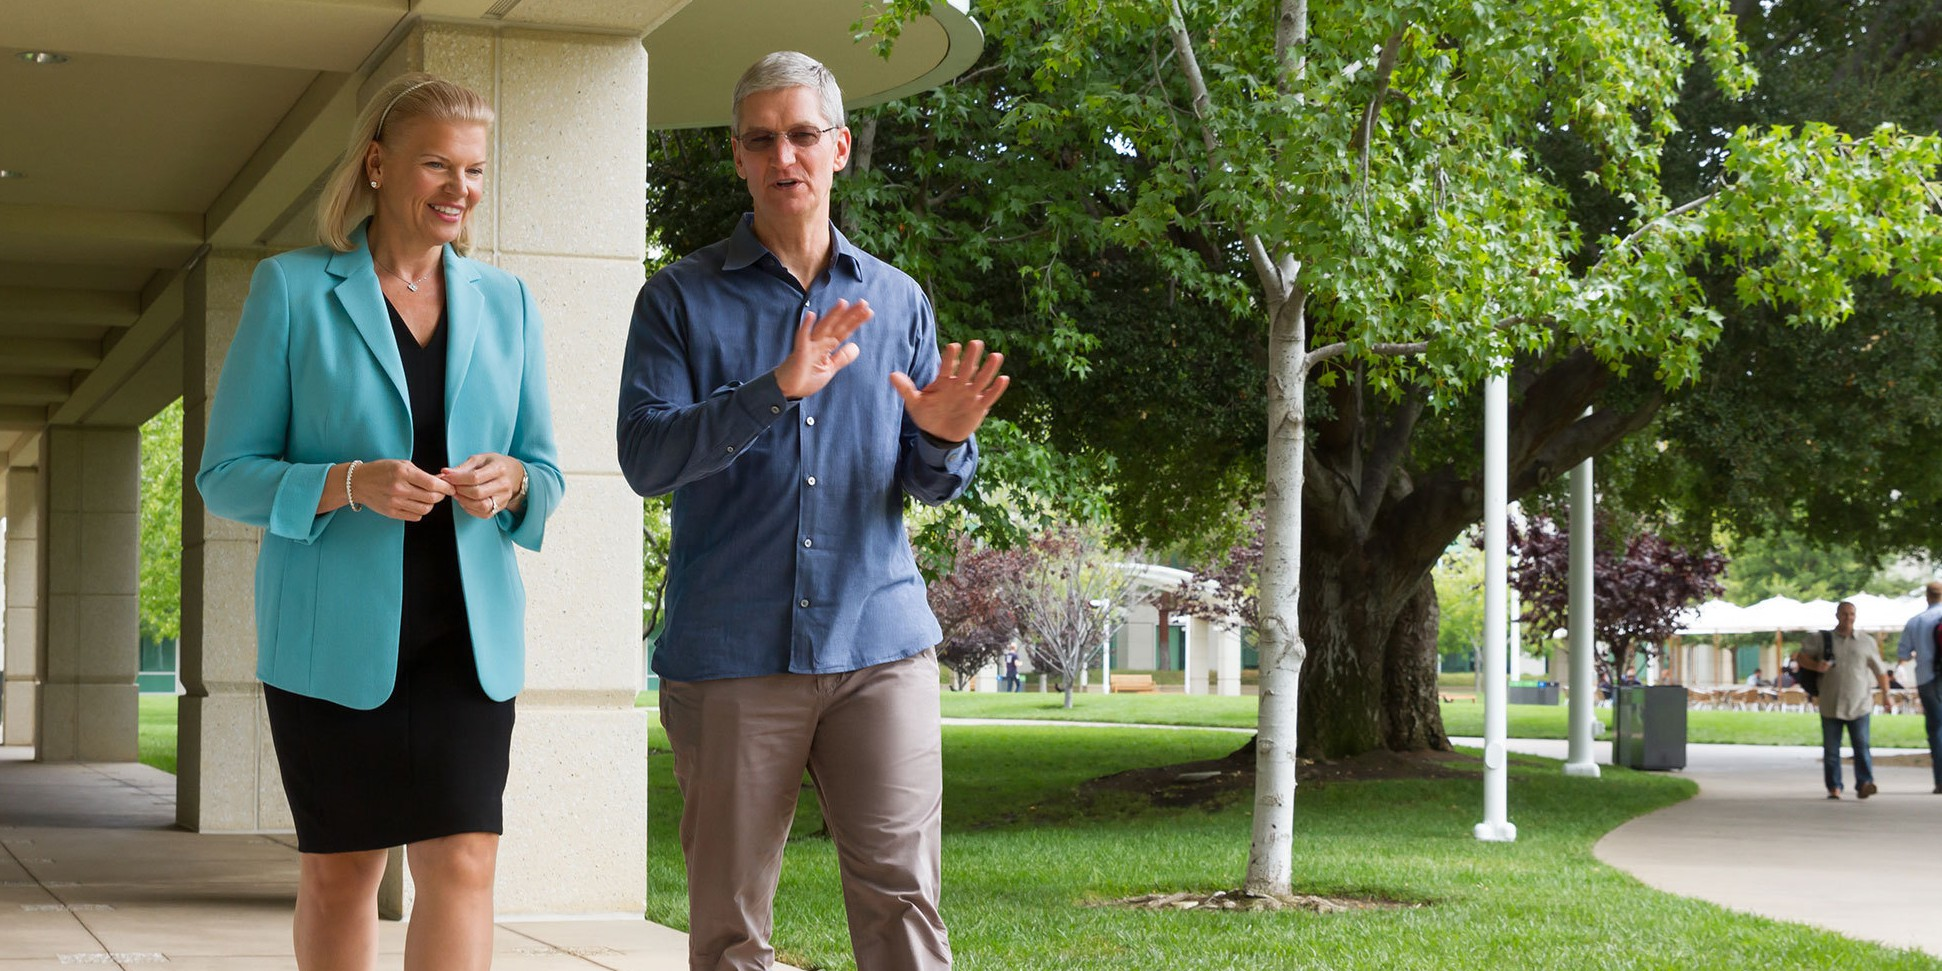 Apple CEO Tim Cook with IBM CEO Ginni Rometty